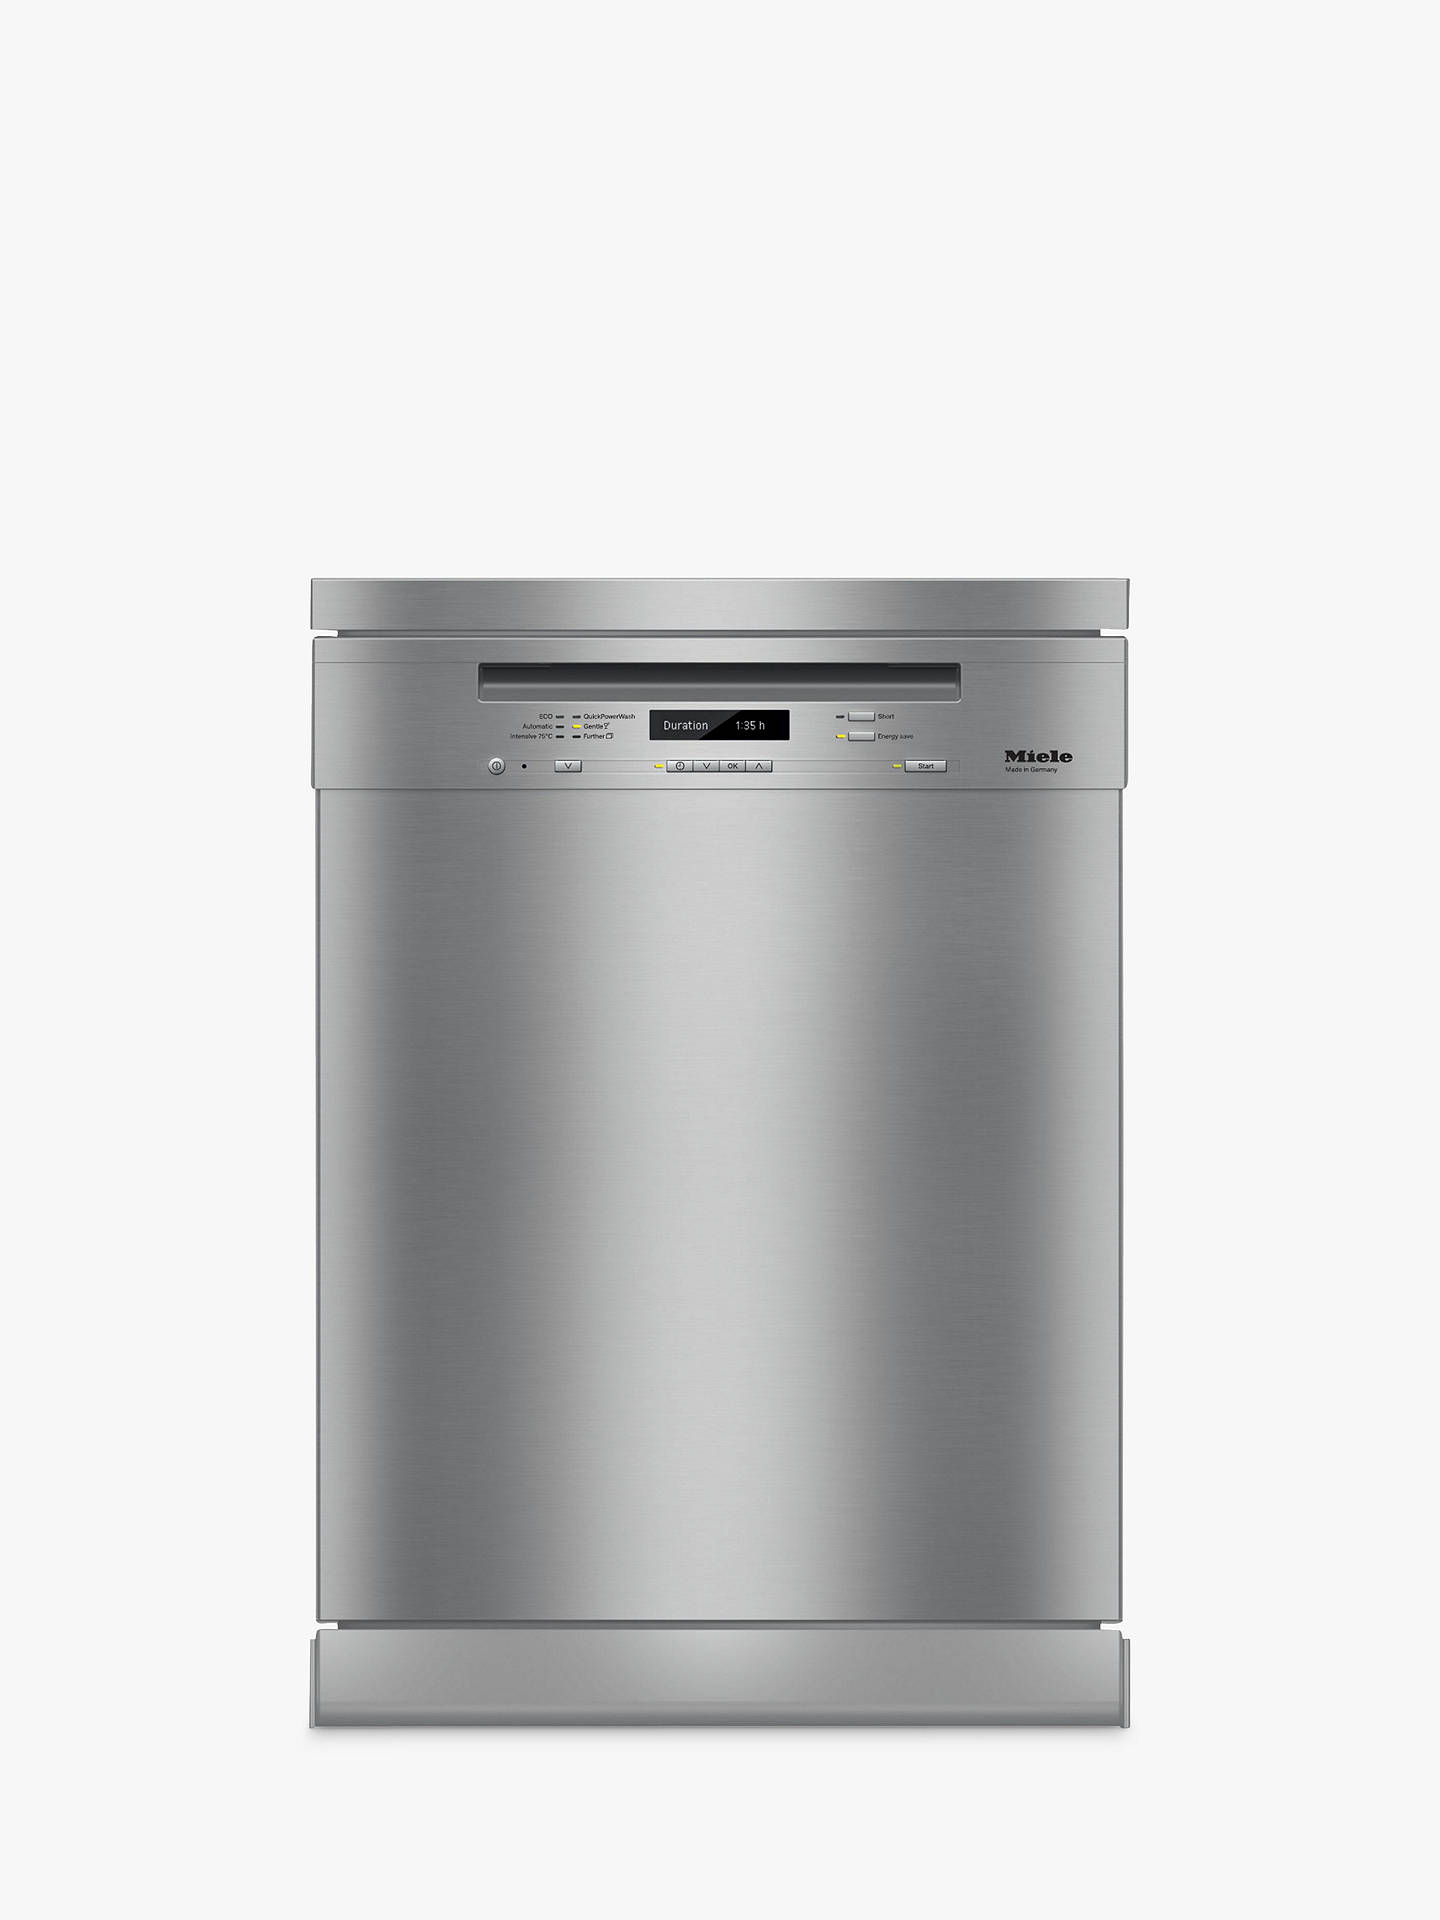 Buy Miele G6730 SC Freestanding Dishwasher, Clean Steel Online at johnlewis.com